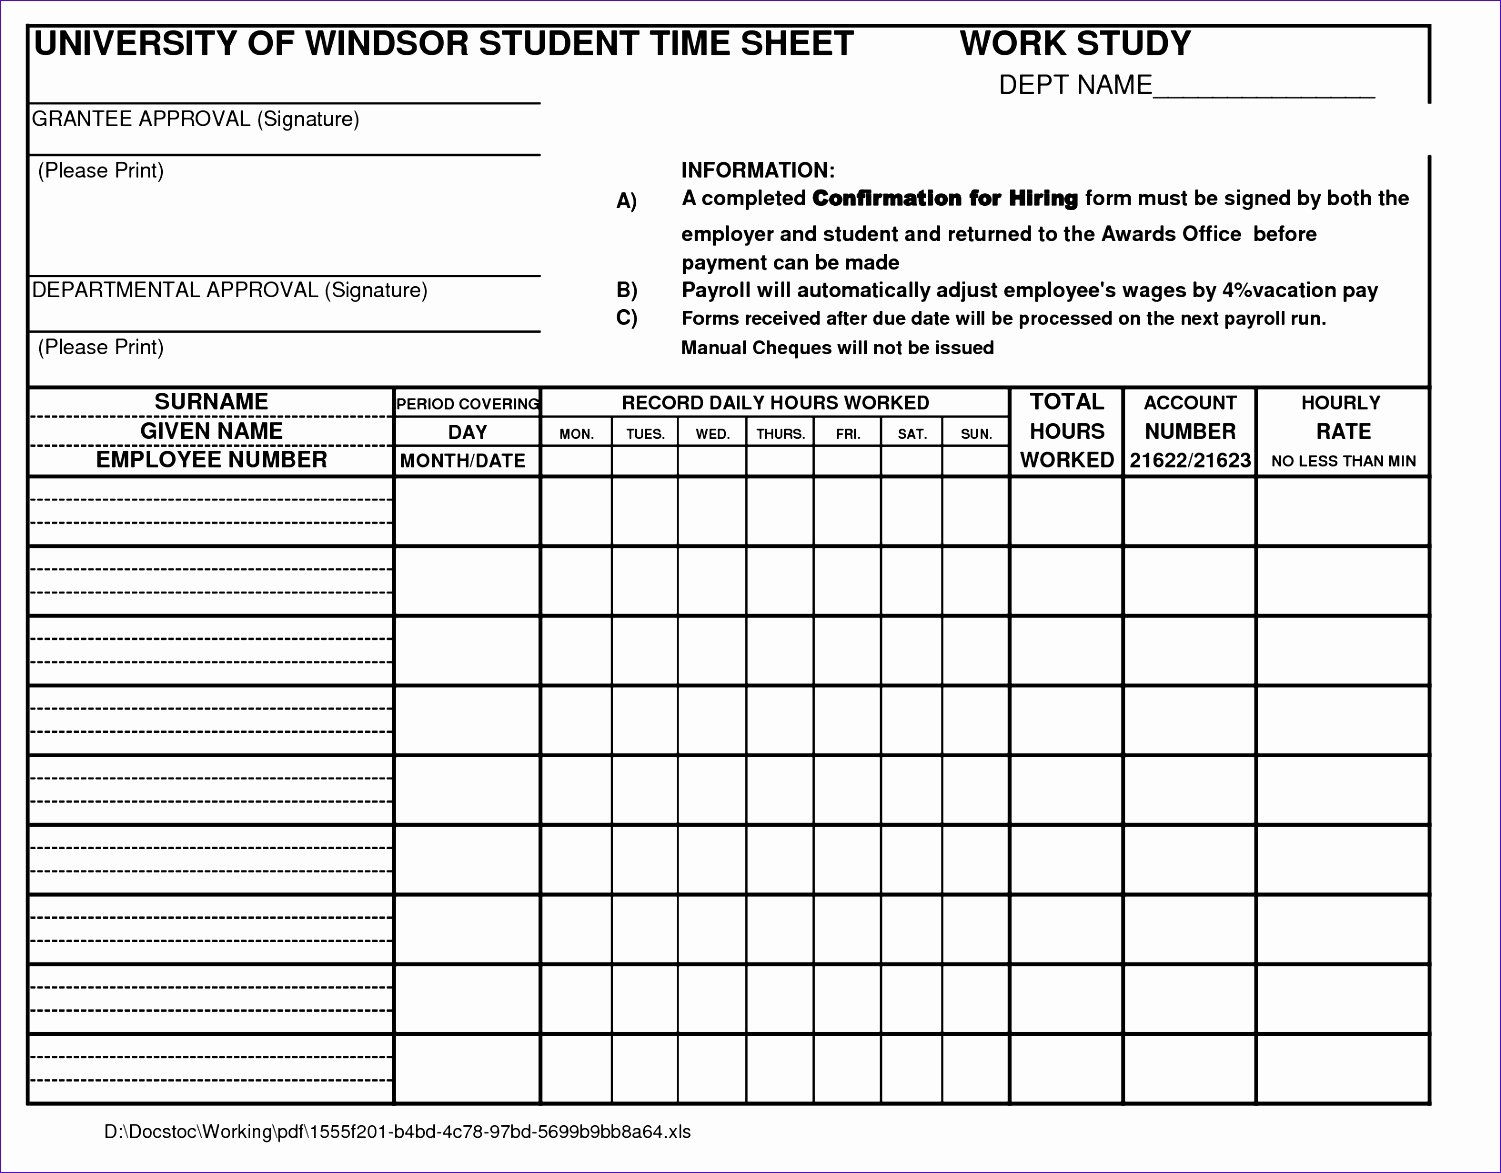 Time and Motion Study Template Inspirational 10 Time Motion Study Excel Template Exceltemplates